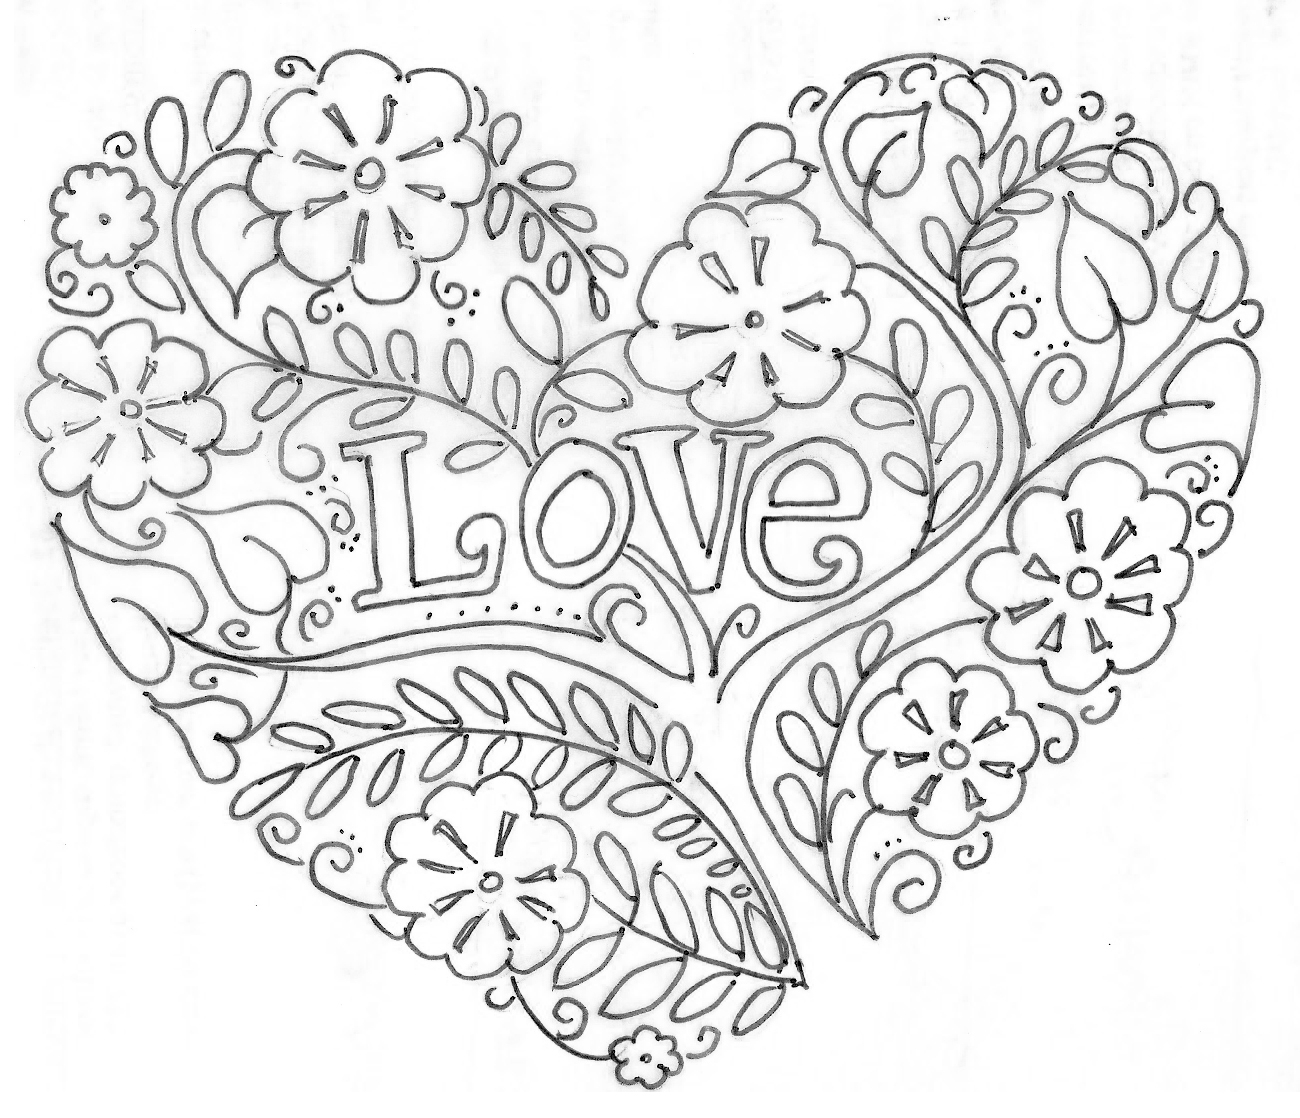 Printable Valentine S Day Coloring Pages My Craftily Ever after to Print Of Valentines Coloring Pages Printable Remarkable Valentine to Collection